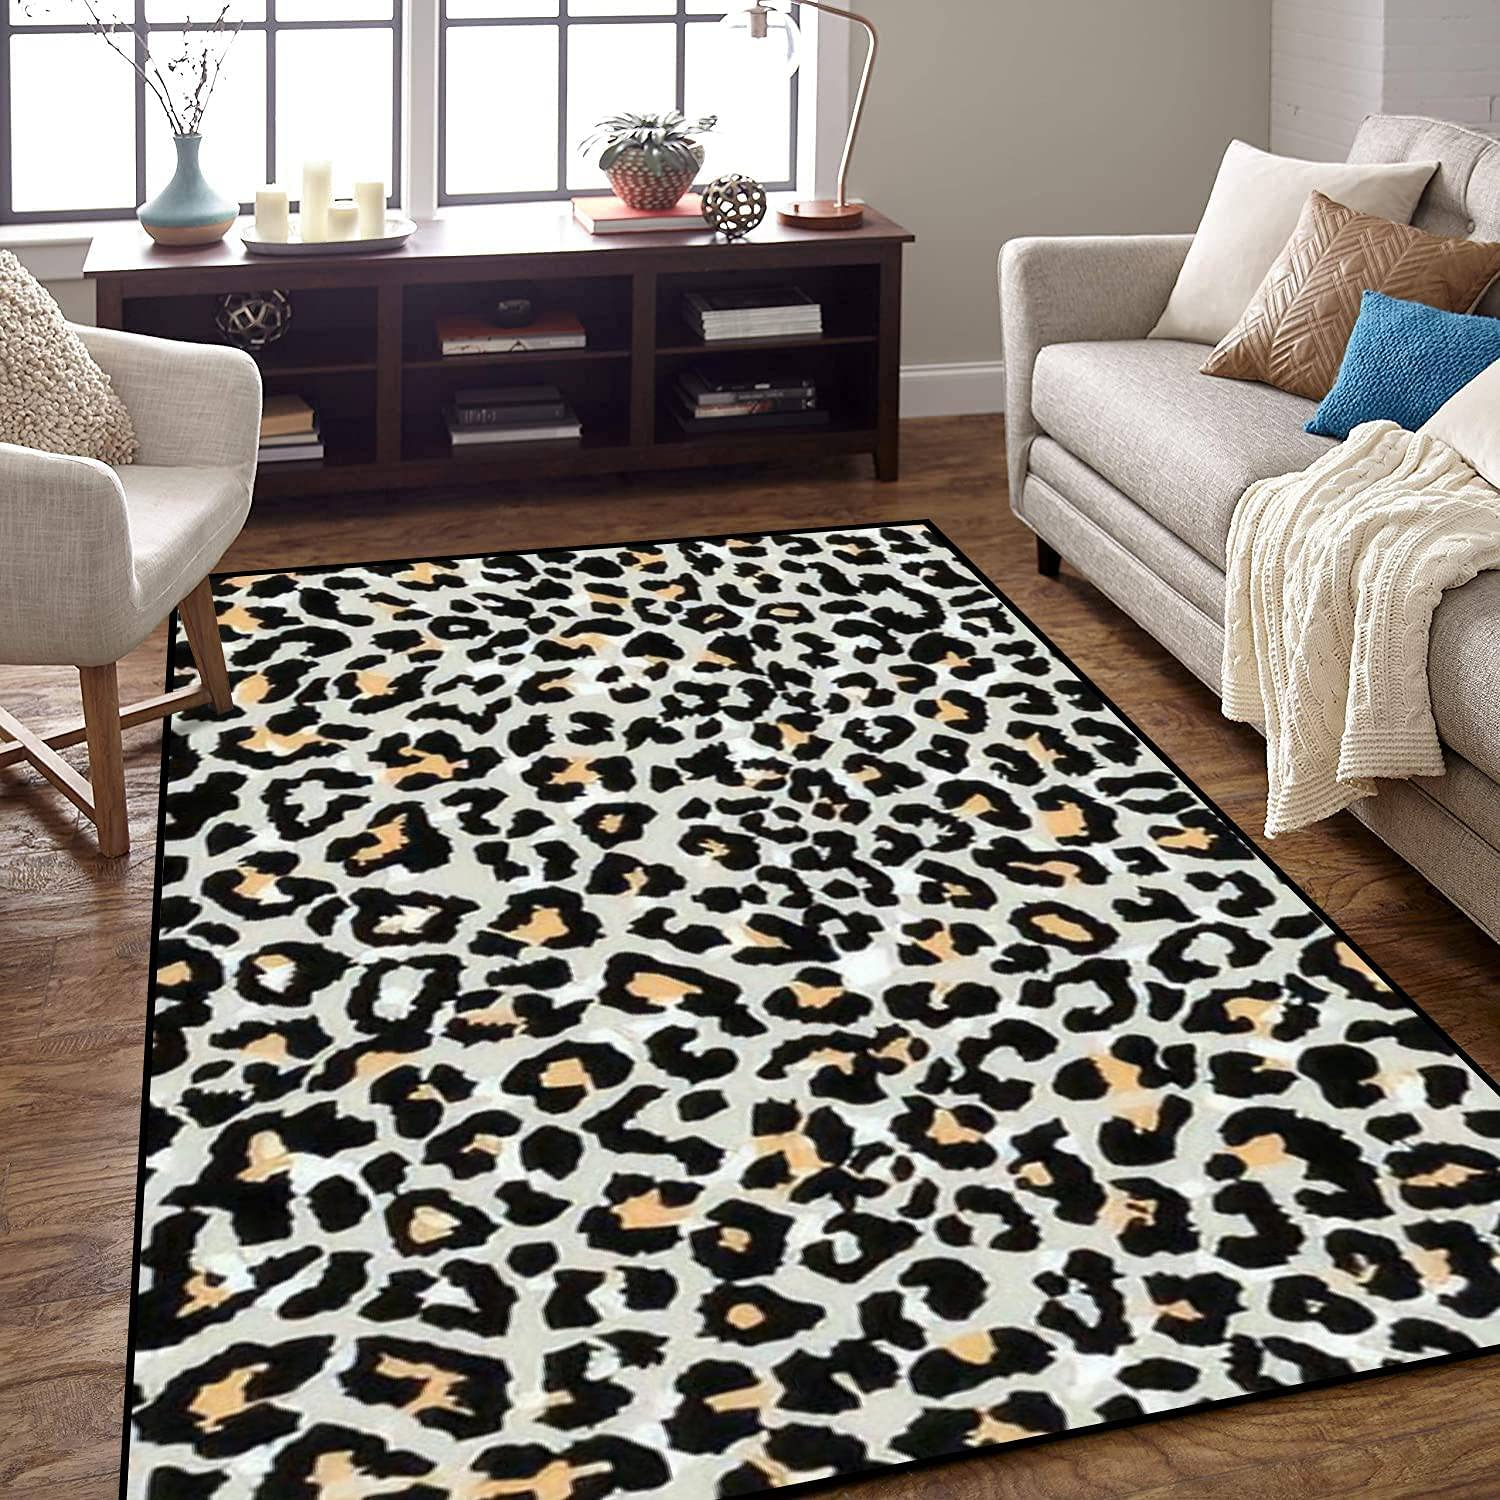 High quality new Area Rug online shopping Non-Slip Floor Mat Leopard Colored Pattern Seamles Wild